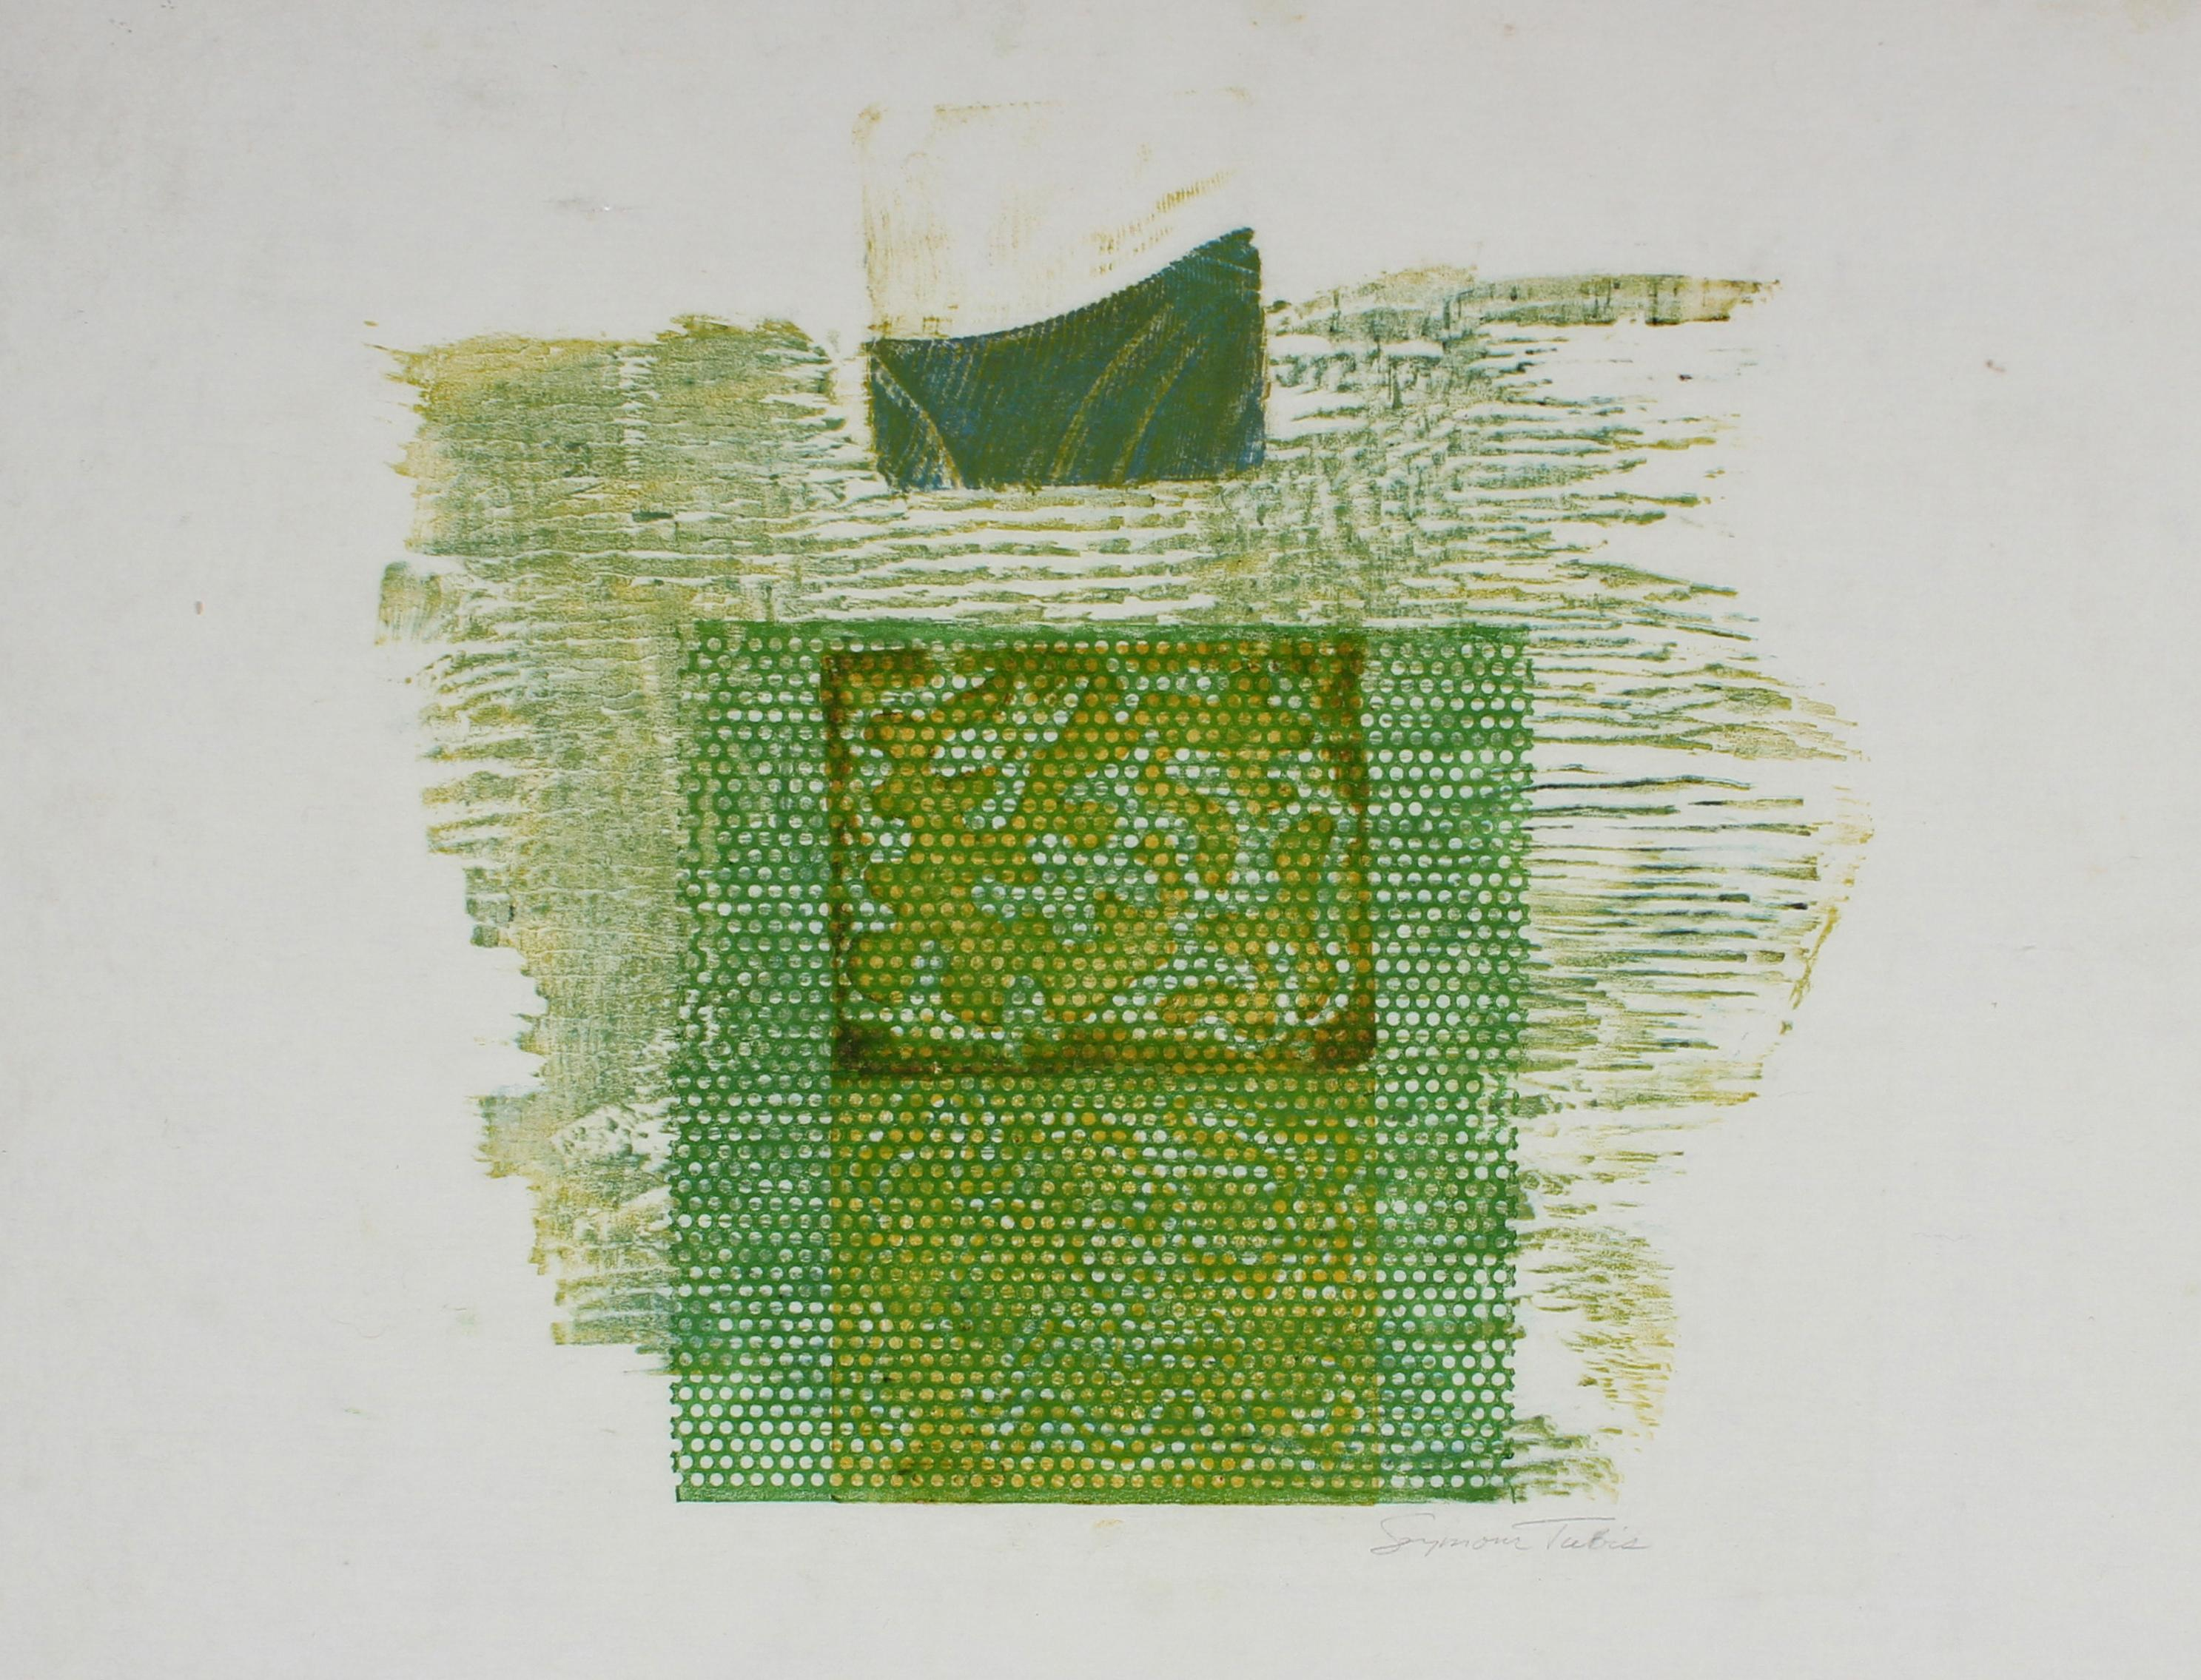 Organic Textured Abstract in Green, Mixed Media Woodcut Print